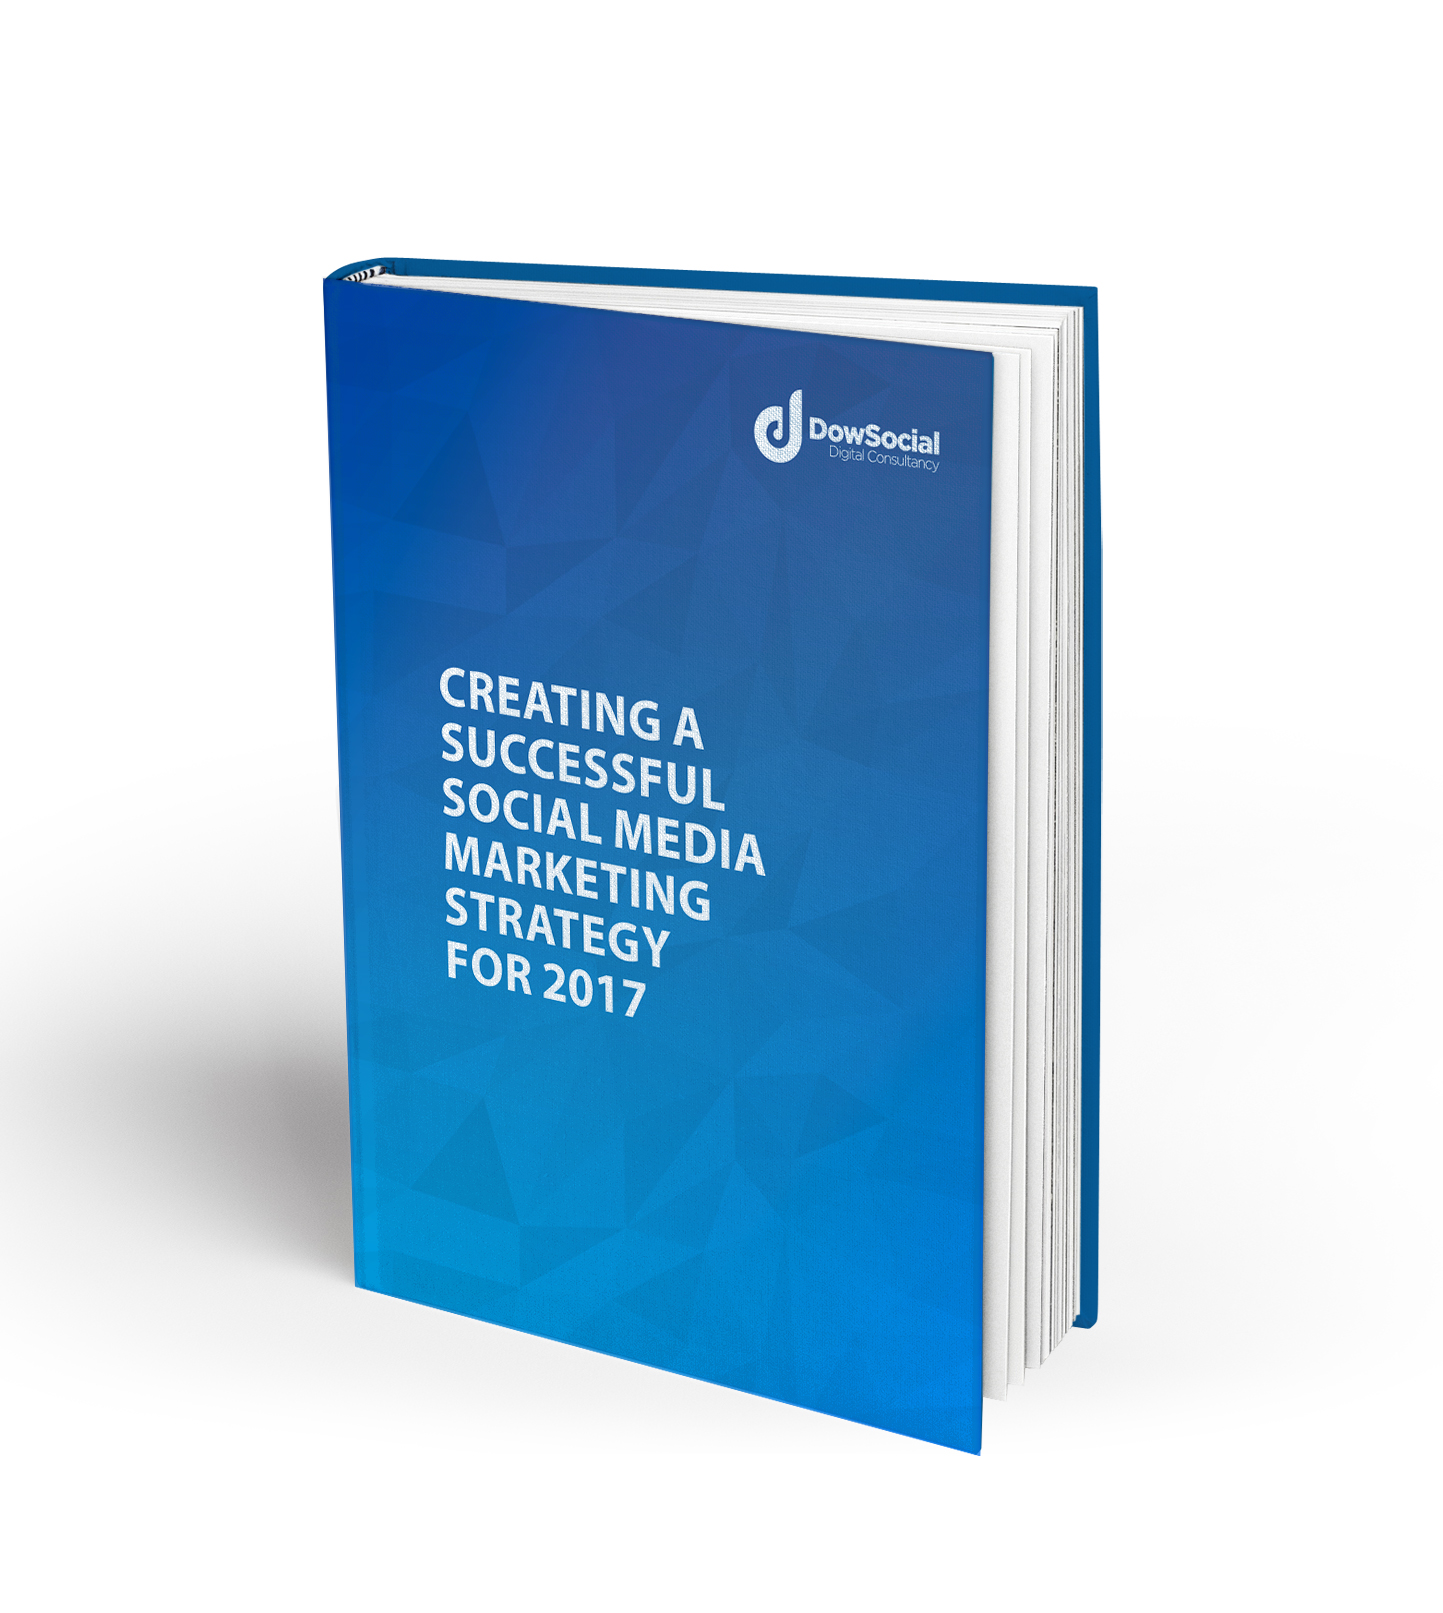 FREE SOCIAL MEDIA MARKETING STRATEGY GUIDE 2017 is the culmination of four years helping businesses of all shapes and sizes to create social media strategies.